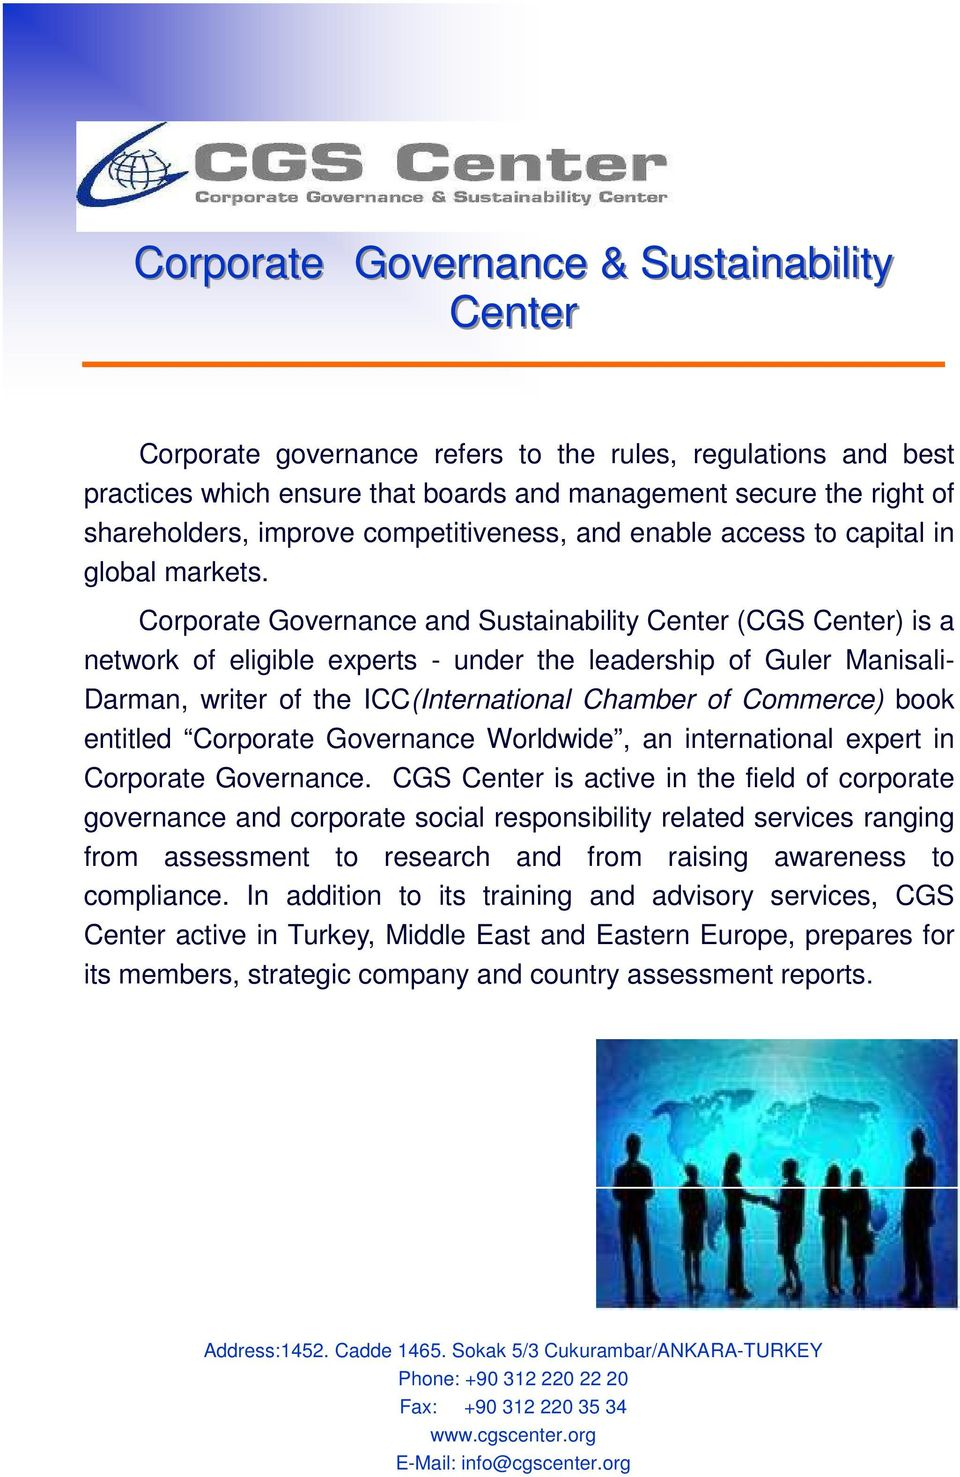 Corporate Governance and Sustainability Center (CGS Center) is a network of eligible experts - under the leadership of Guler Manisali- Darman, writer of the ICC(International Chamber of Commerce)